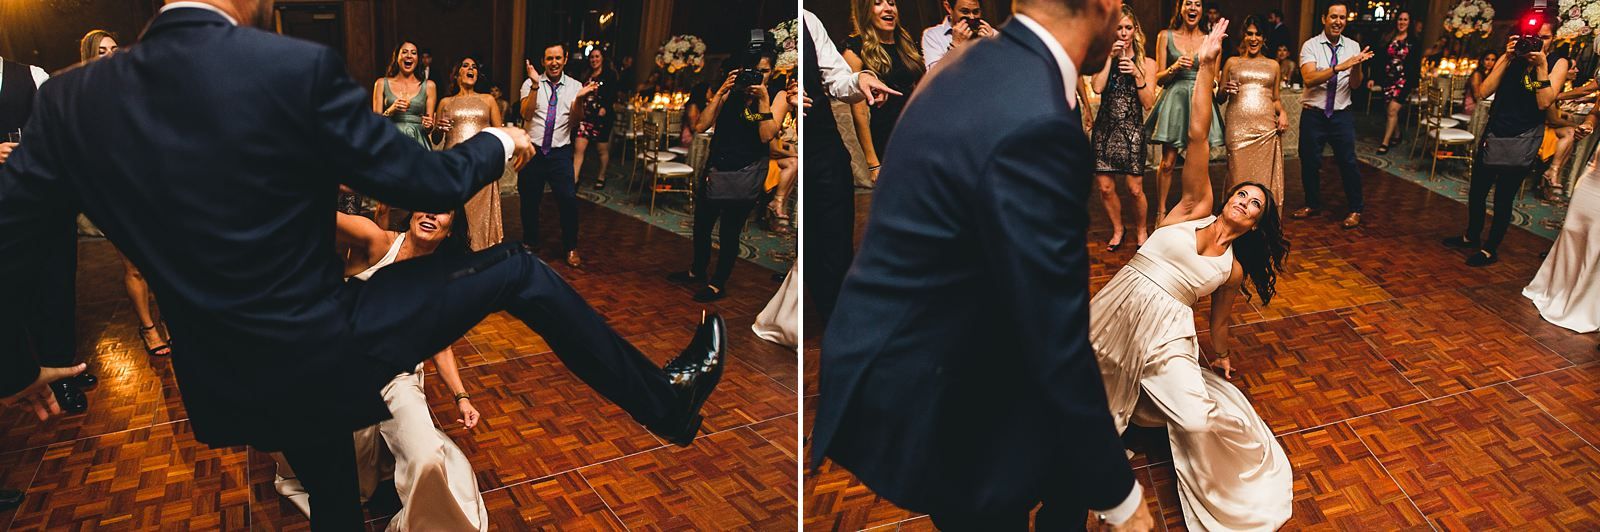 57 kicked in the head during dancing - Intercontinental Chicago Hotel Wedding // Lili + Danny